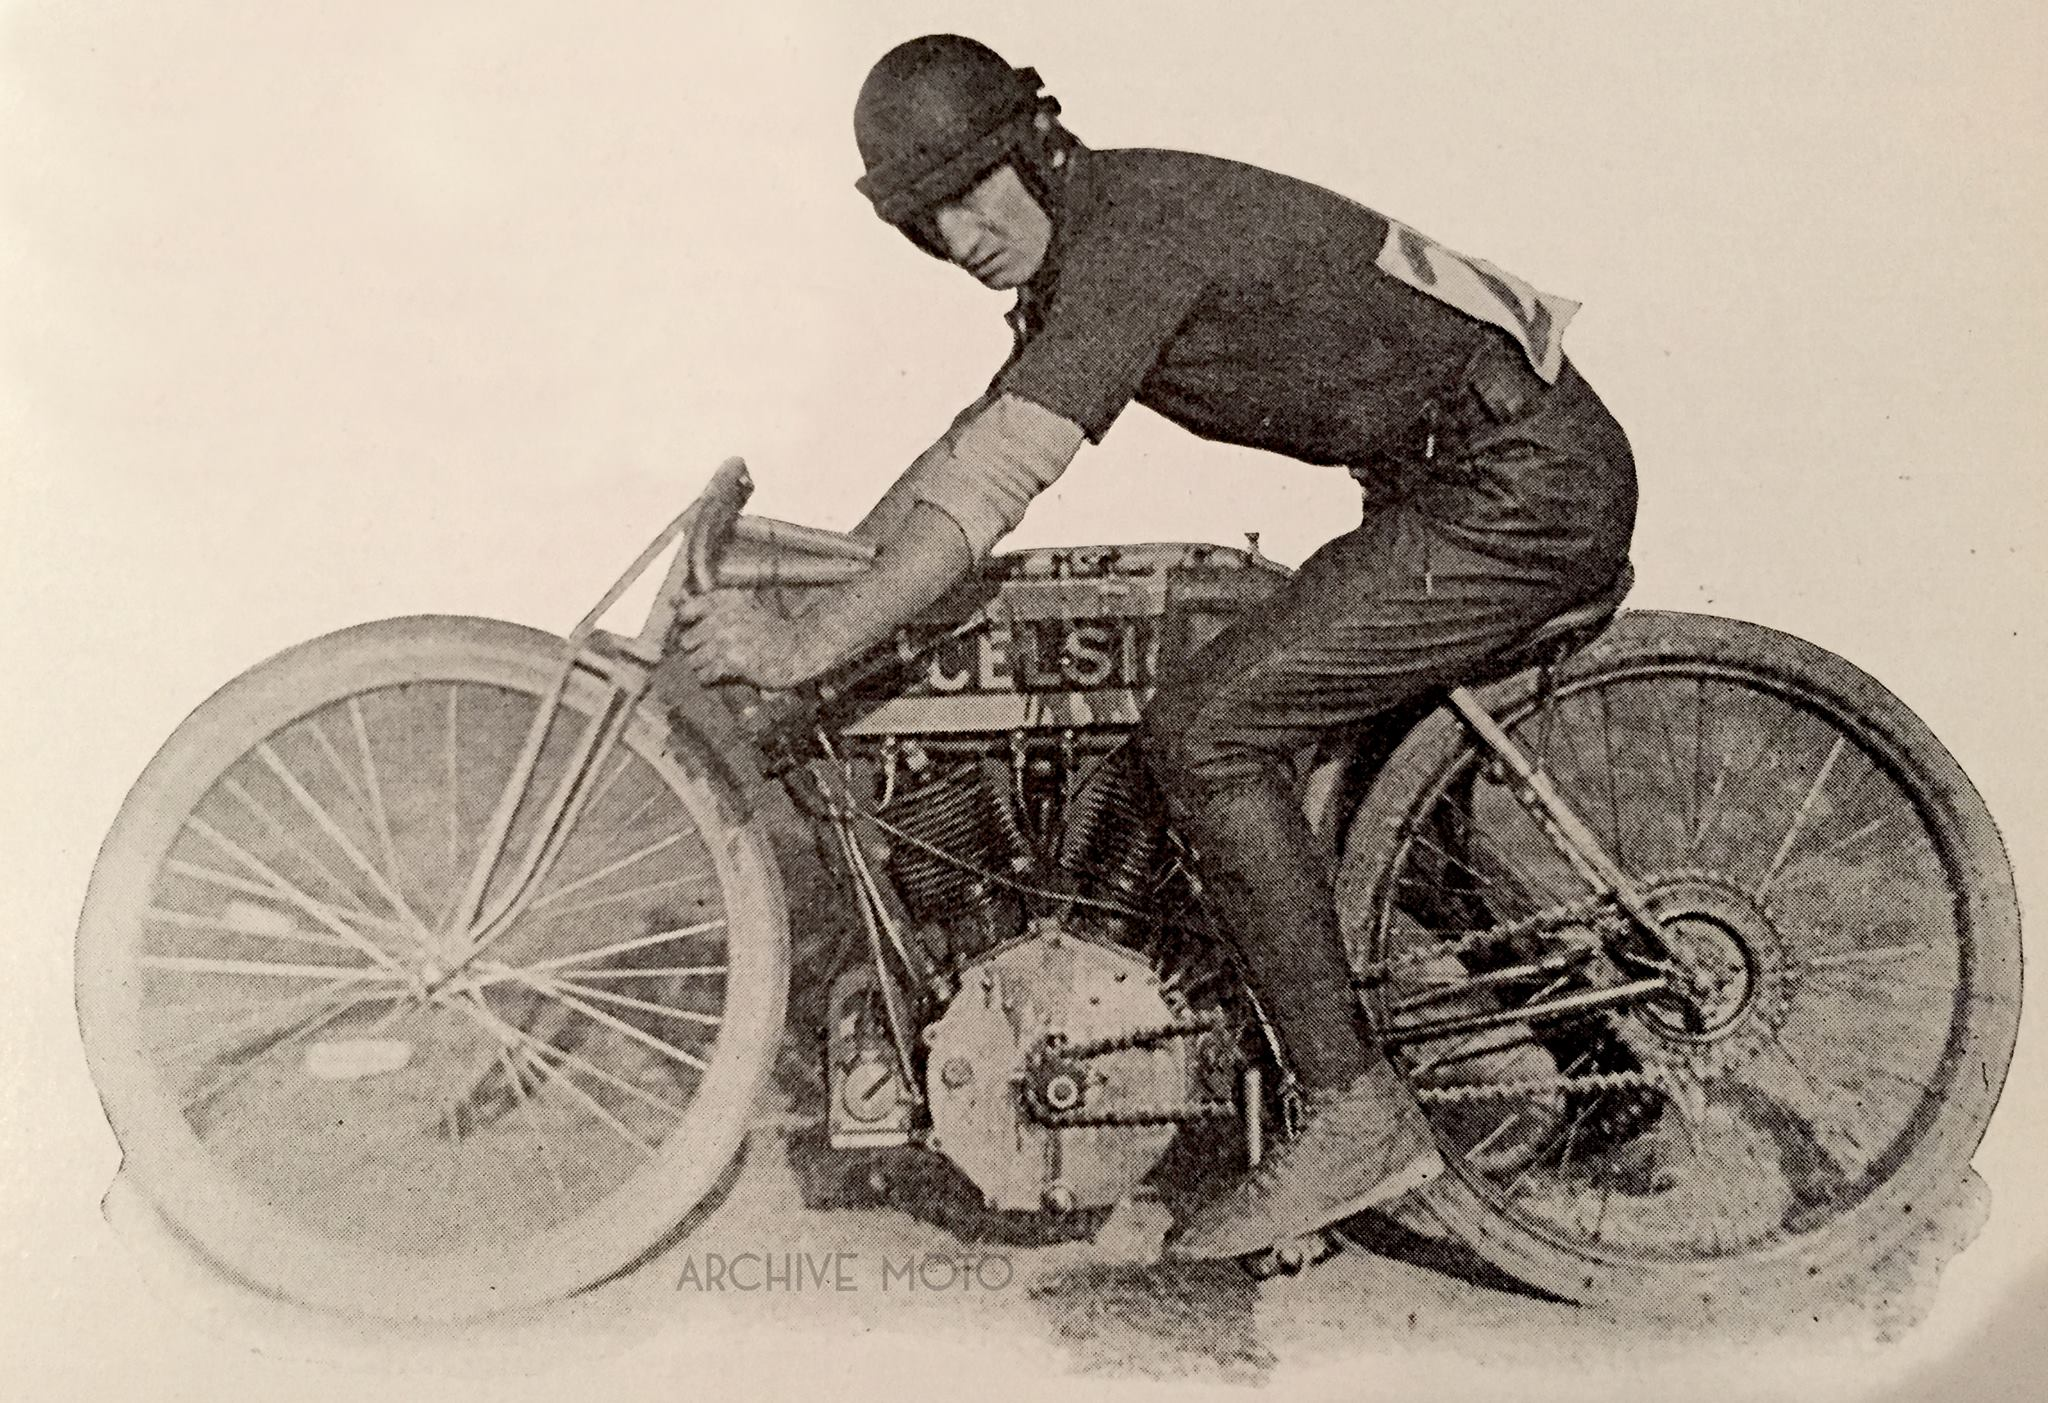 """Pictured is Jacob DeRosier, the world's fastest motorcycle racer shortly after his turbulent run down south onboard his Excelsior """"7"""" at a race in Guttenberg, NJ on October 29, 1911."""